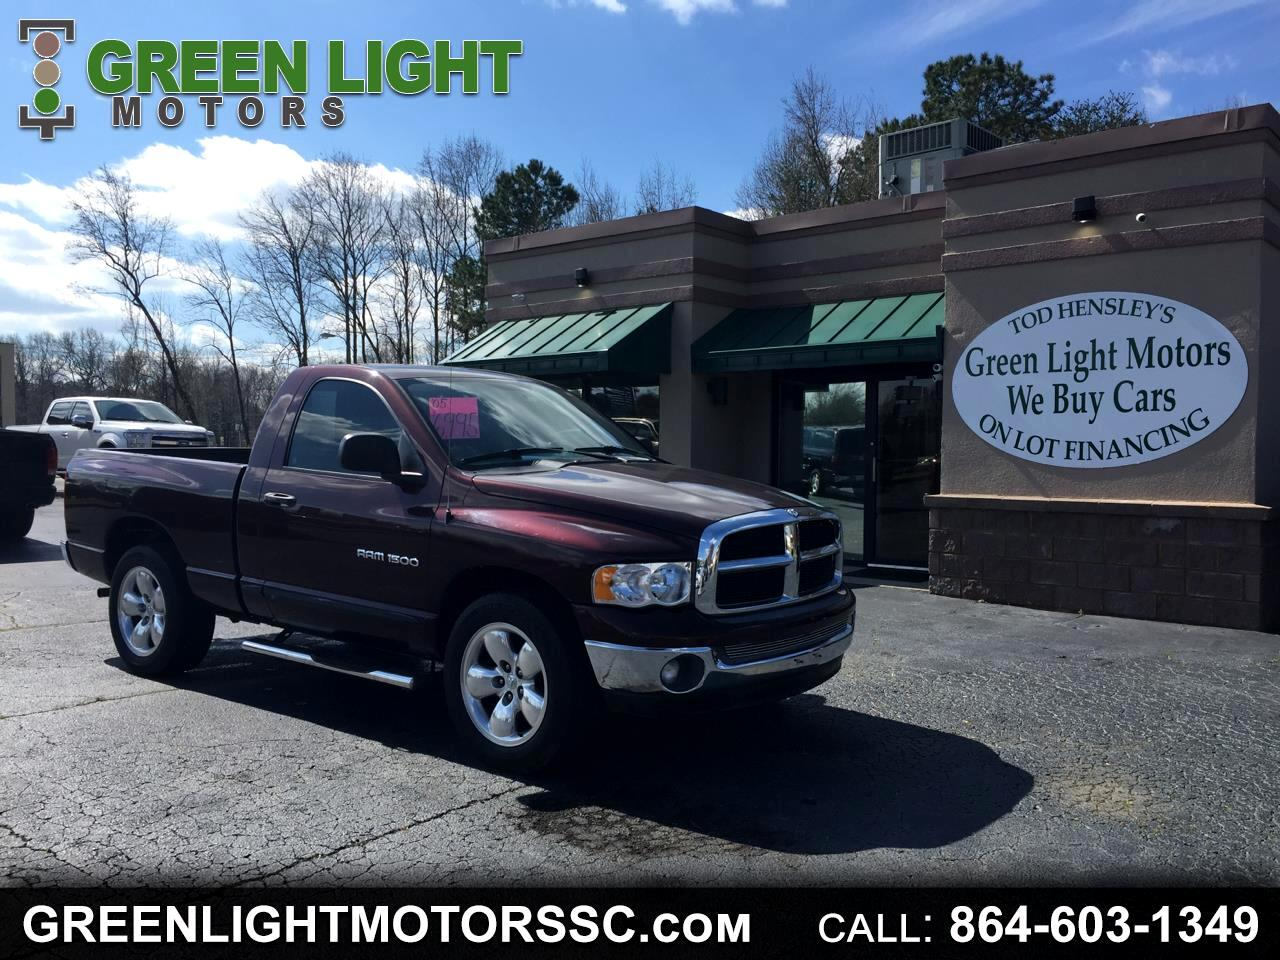 2005 Dodge Ram 1500 SLT Regular Cab Short Bed 2WD